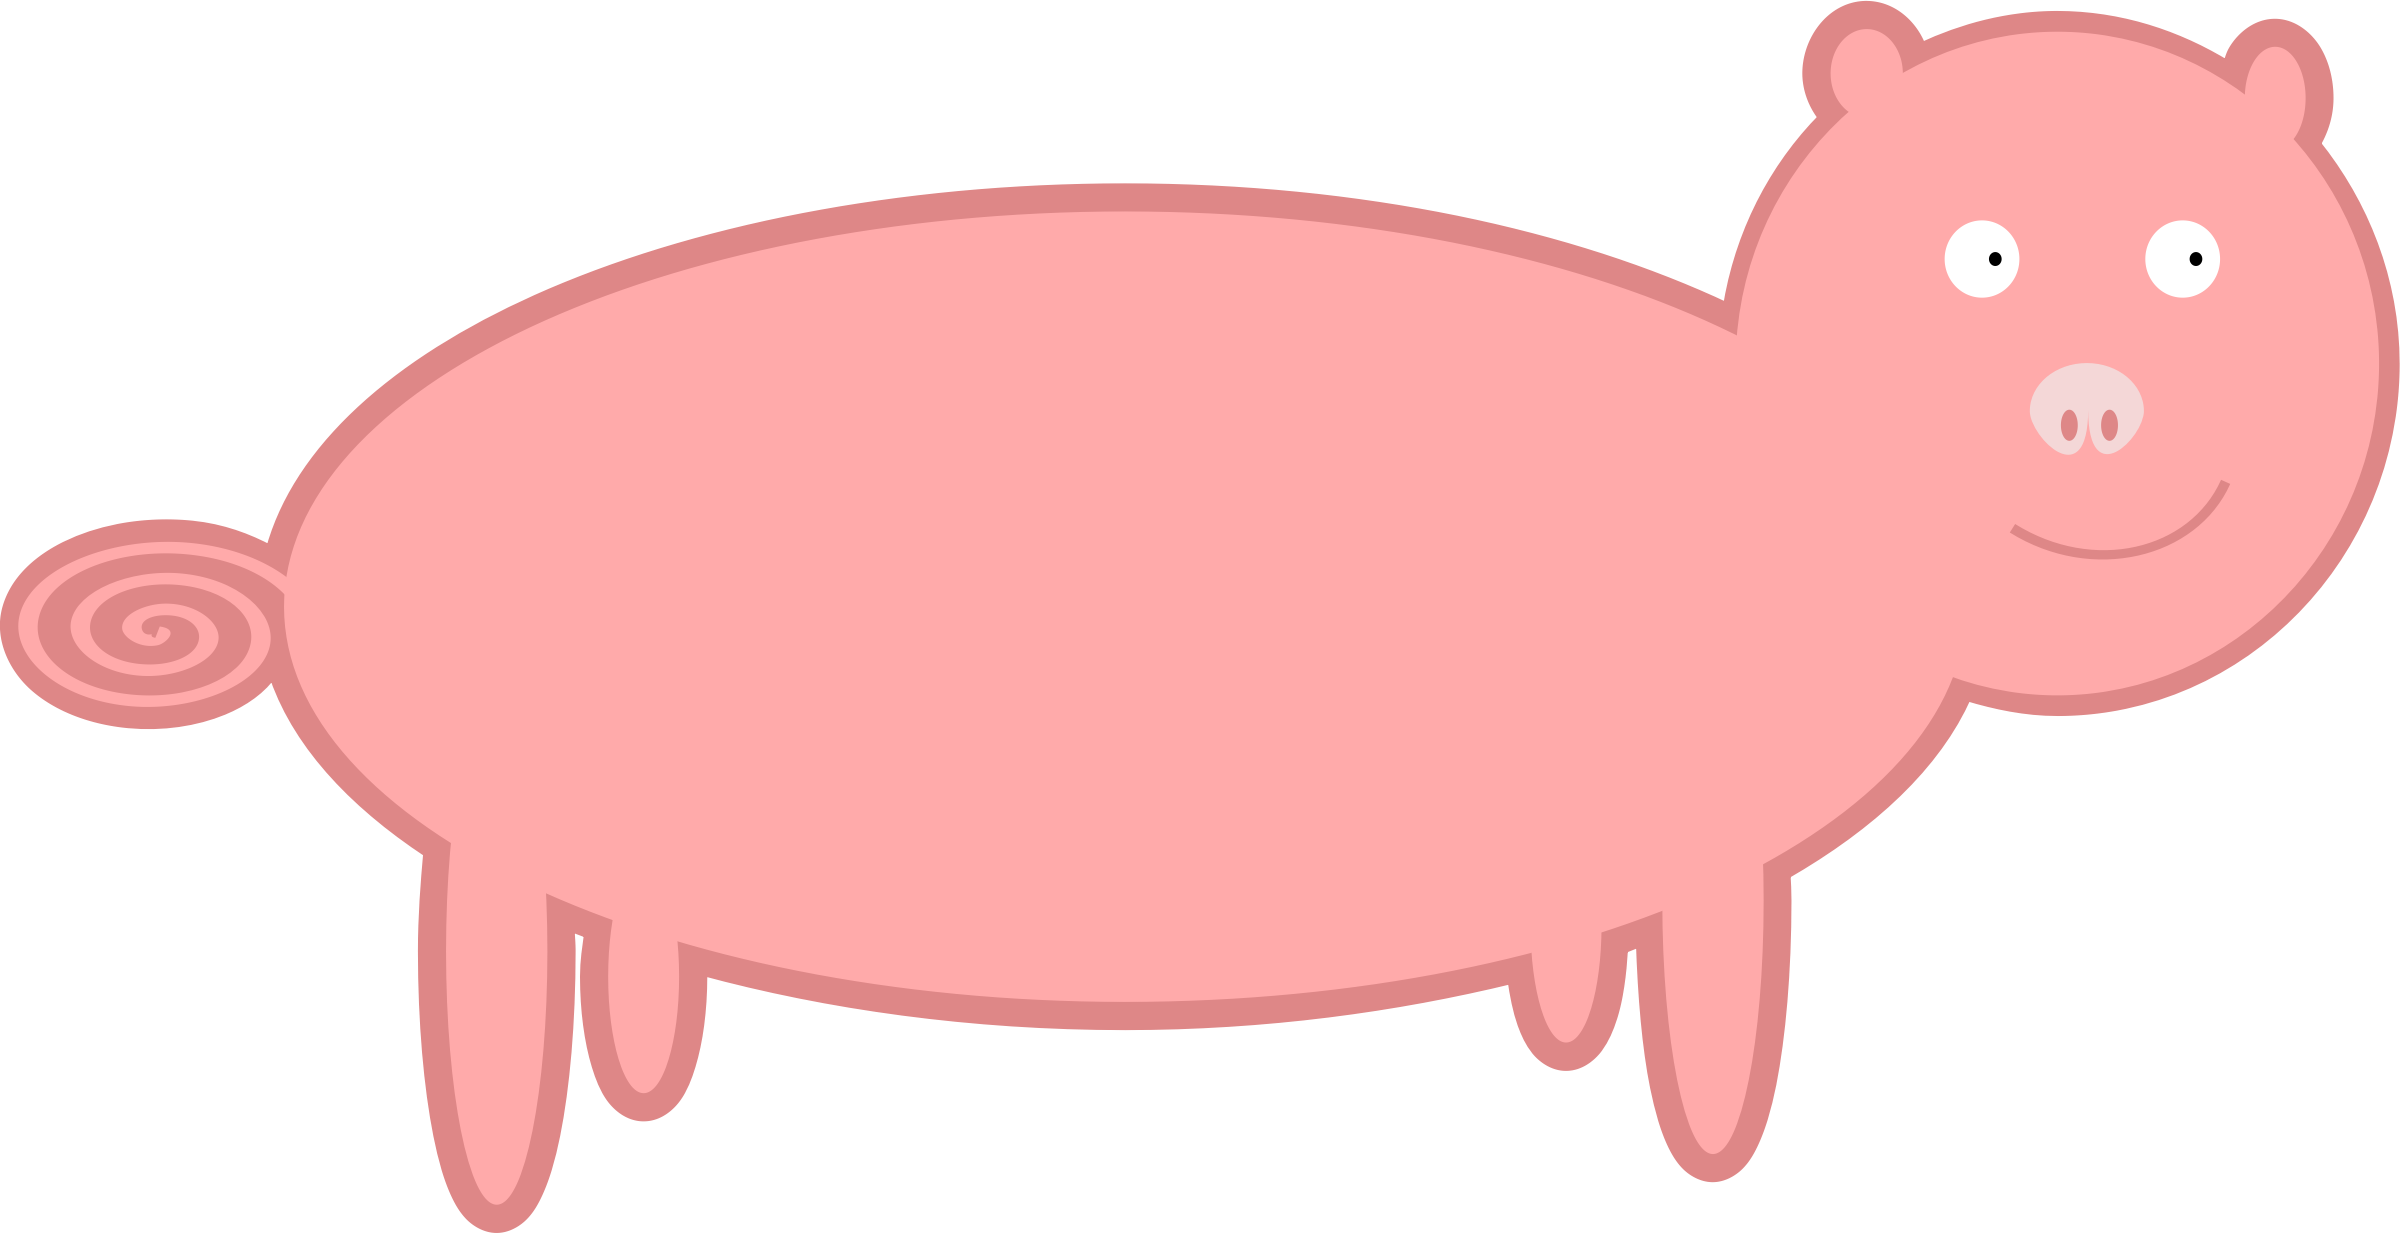 Pig by matheod